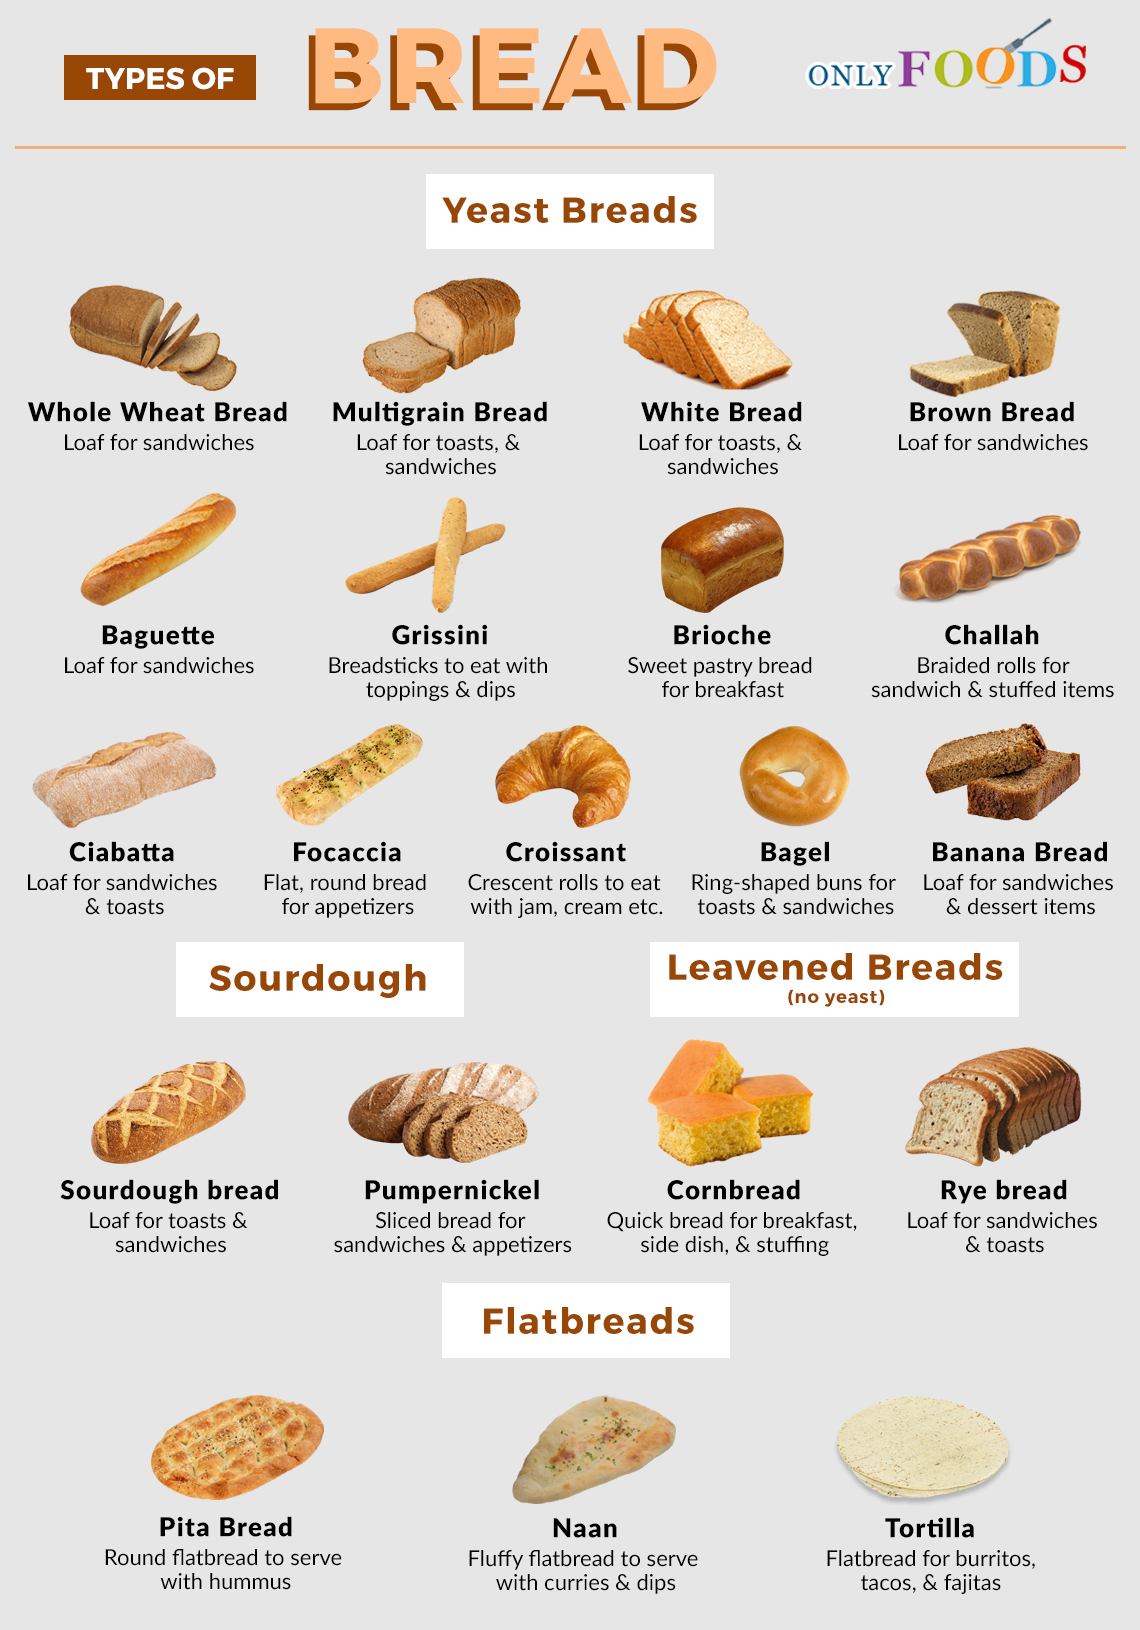 20 of the Most Popular Types of Breads